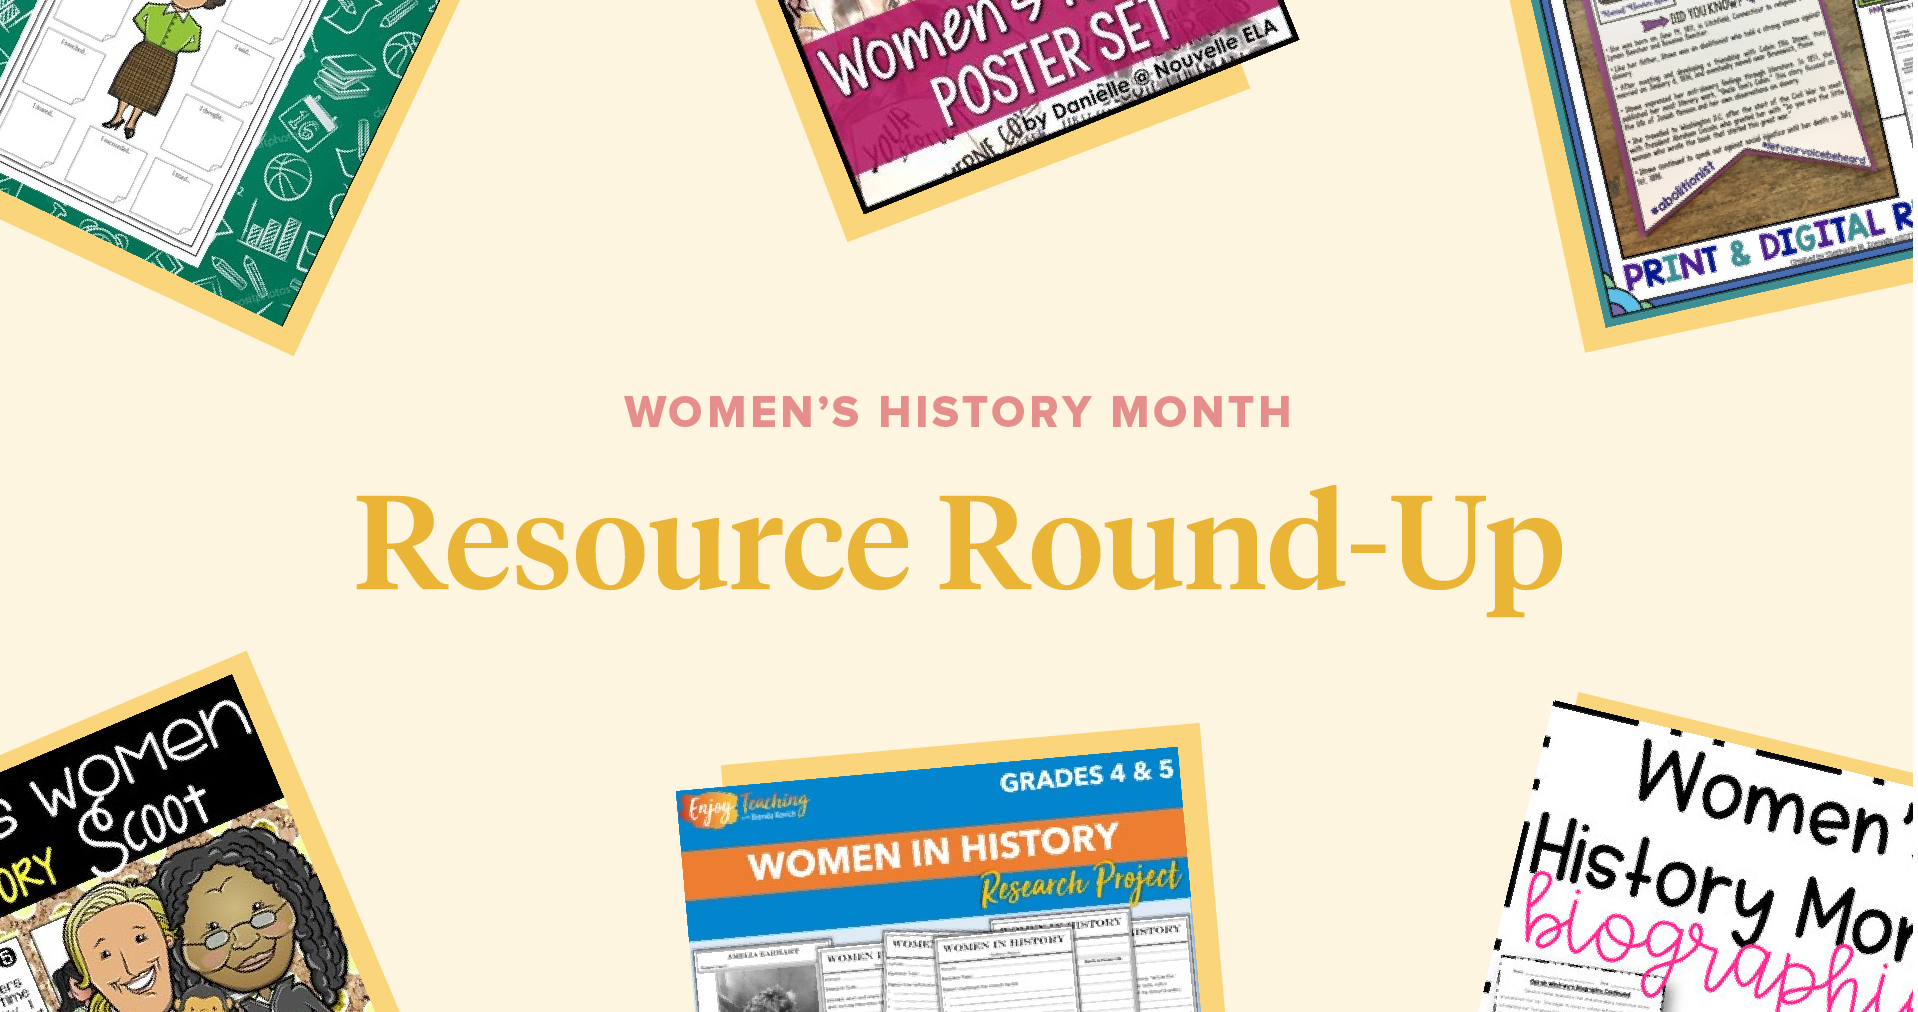 Women's History Month Resource Round-Up